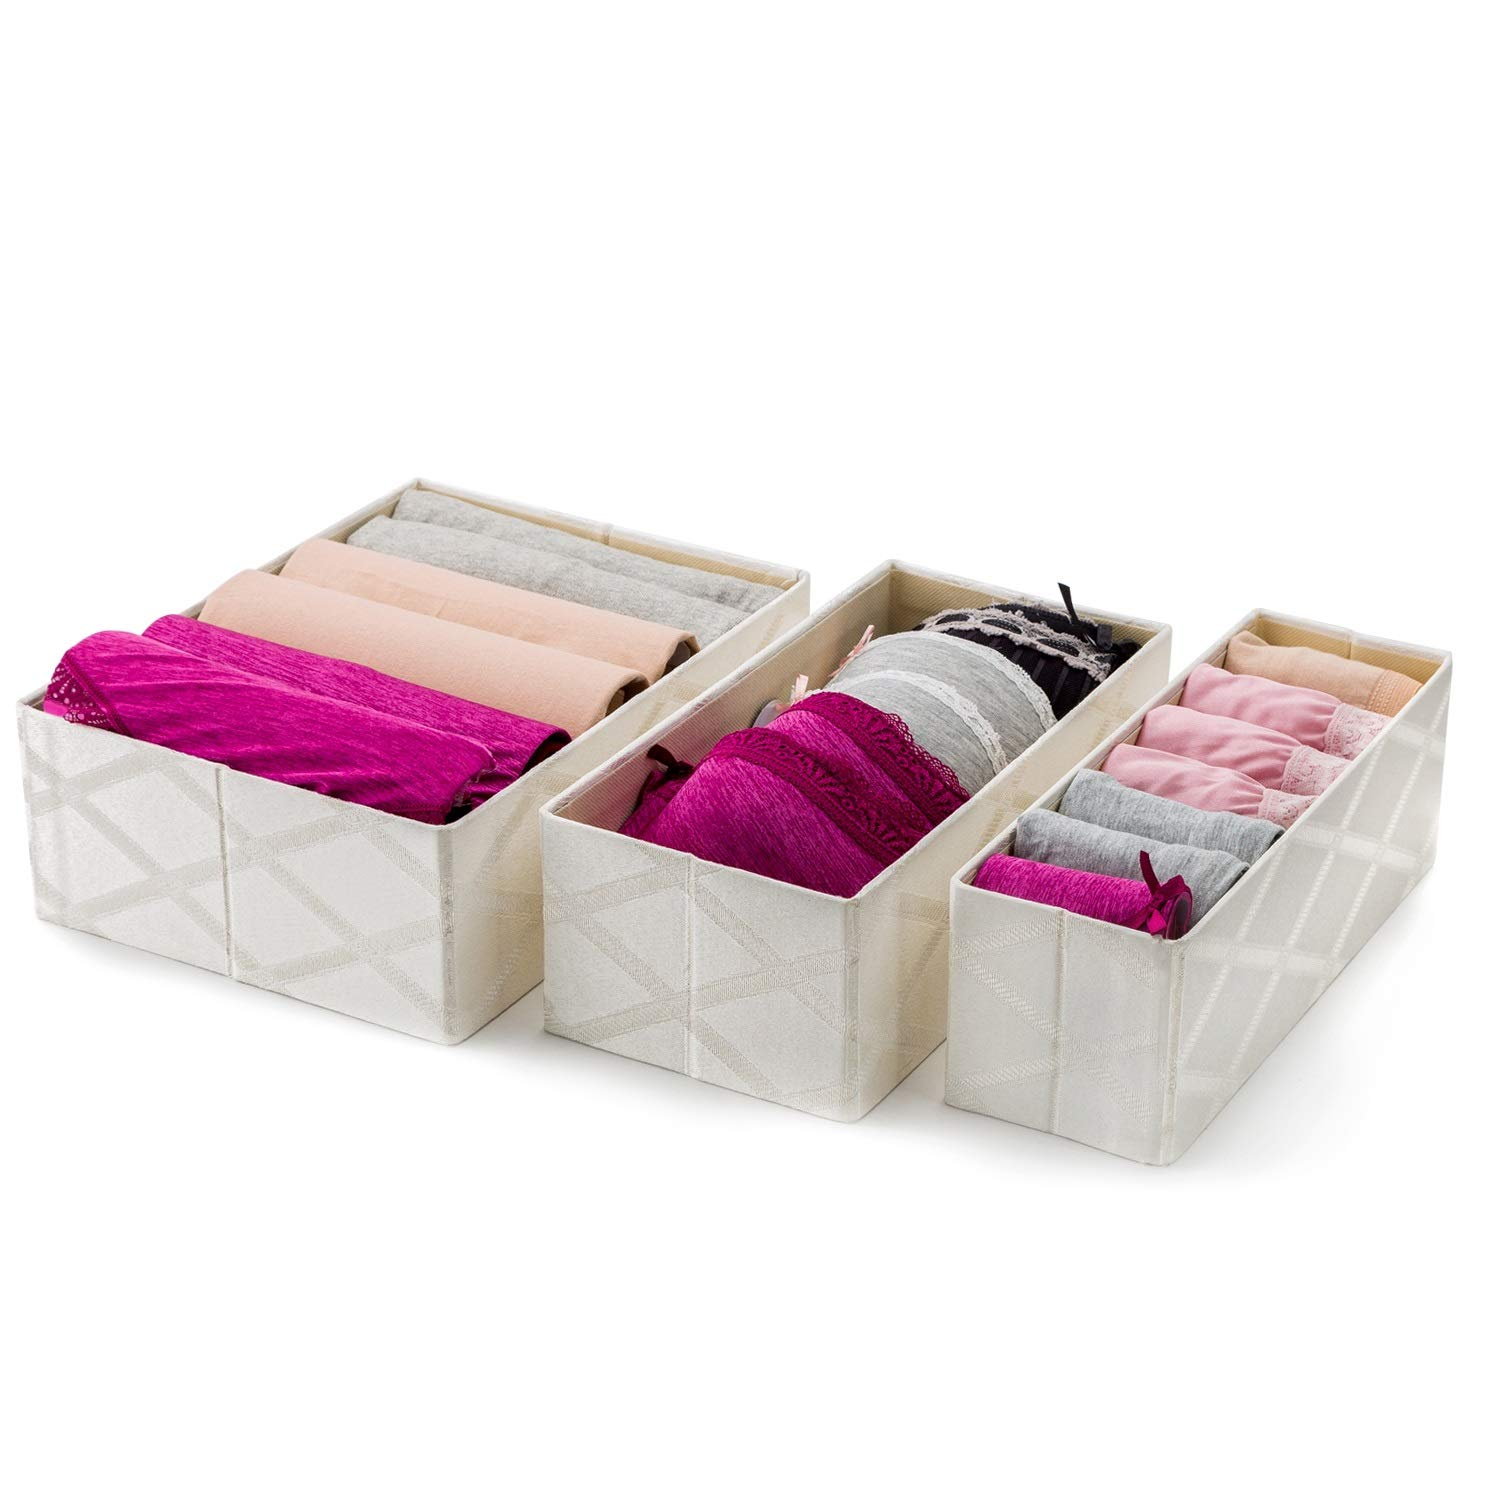 Natural Linen 3-Compartment Organizer